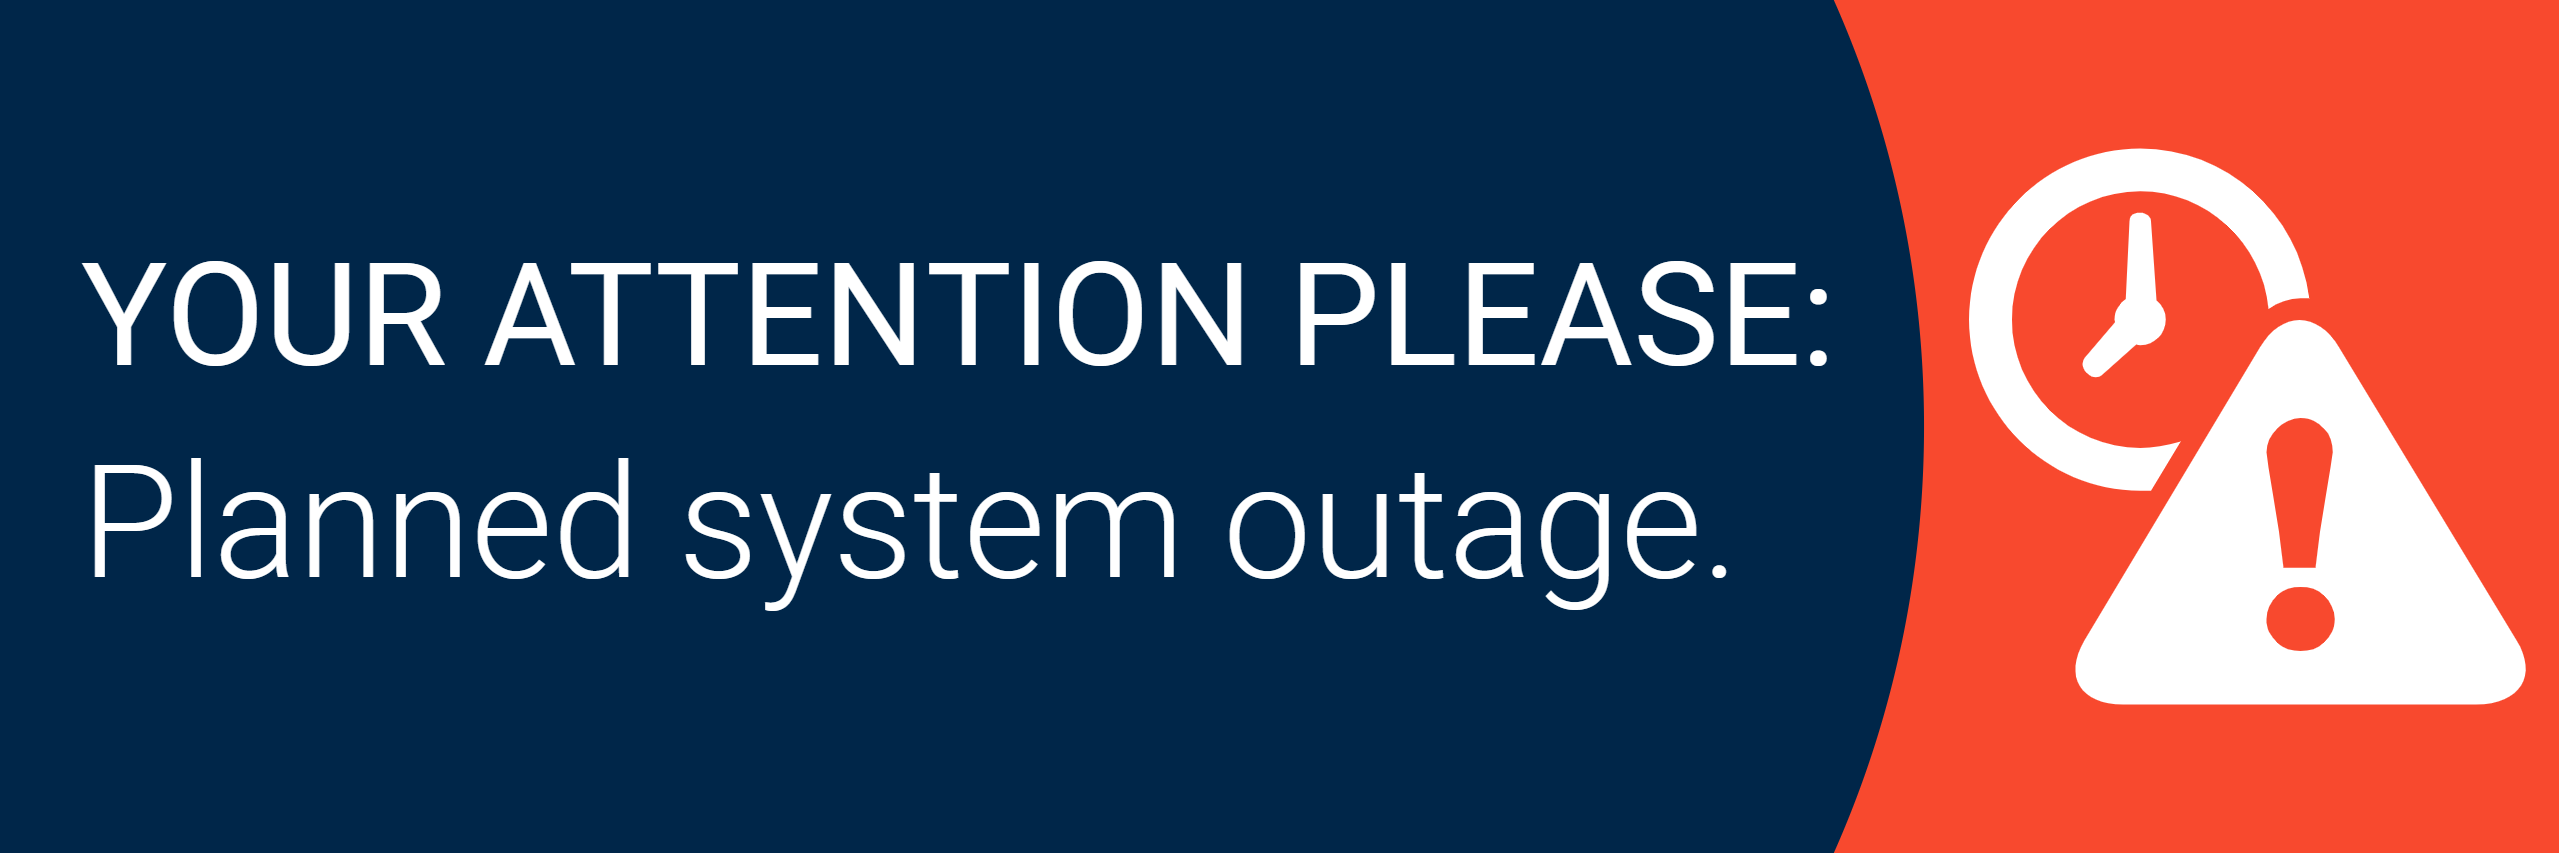 Planned system outage graphic